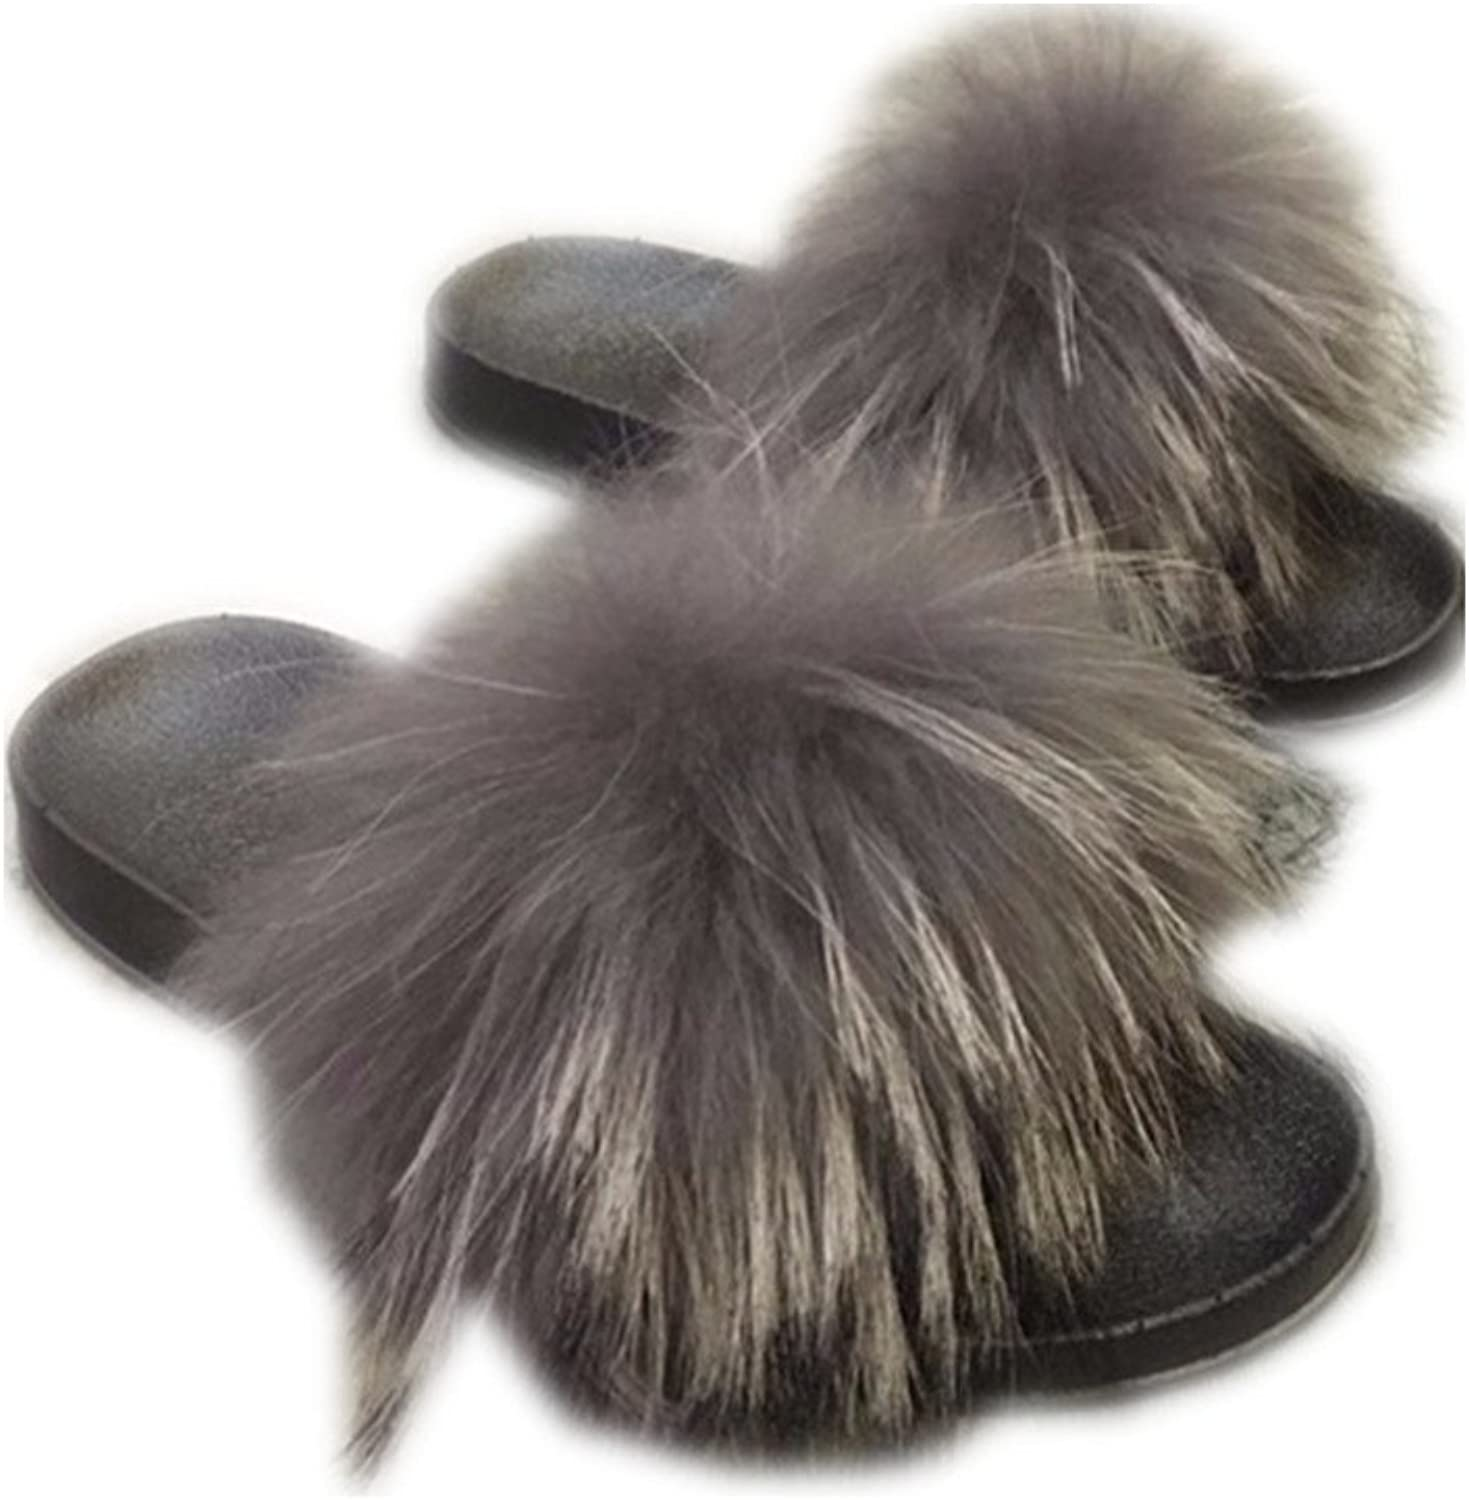 MH Bailment Womens Luxury Real Raccon Fur Slippers Slides Indoor Outdoor Flat Soles Soft Summer shoes